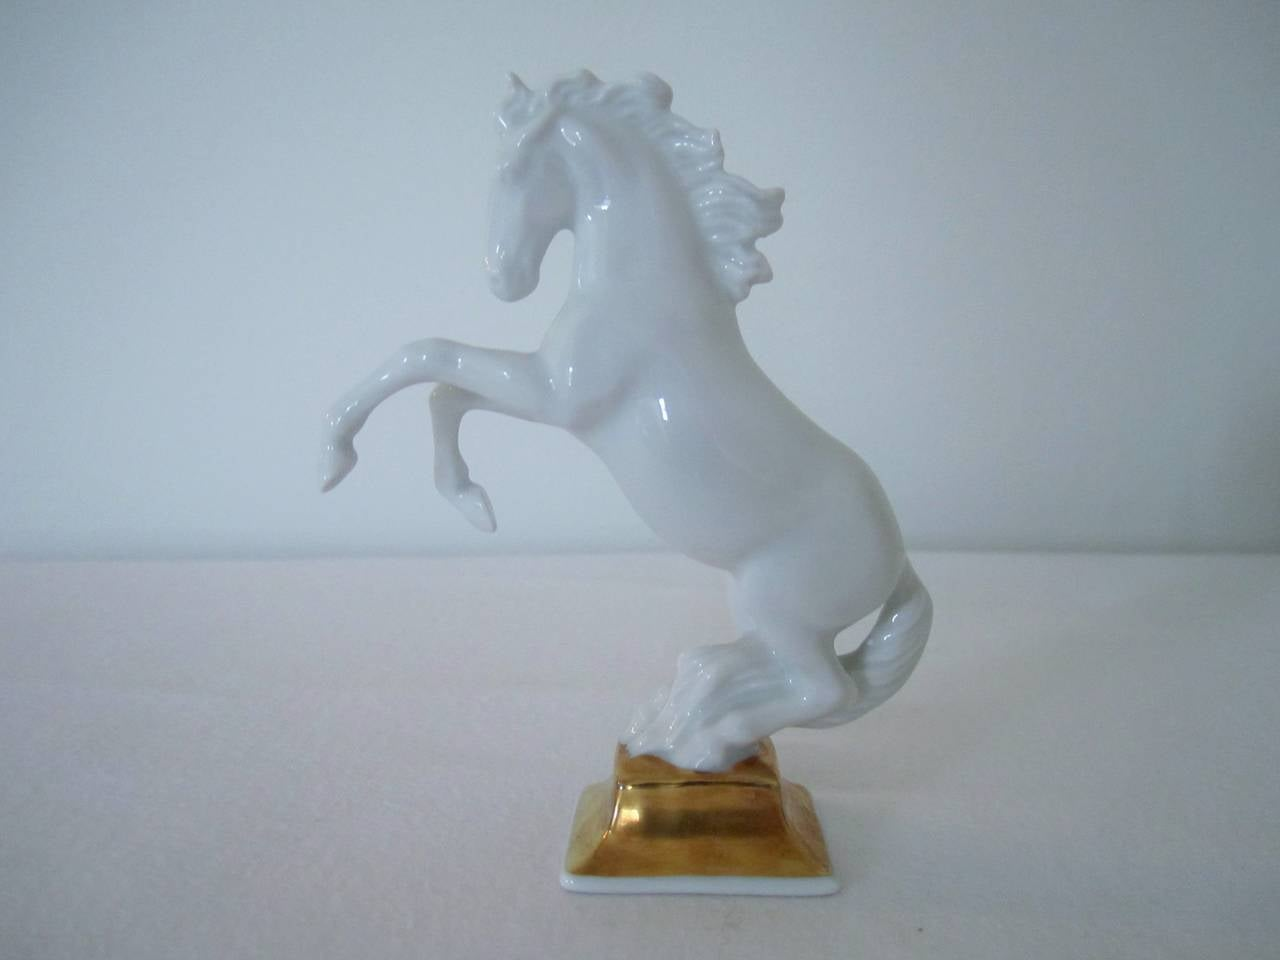 A vintage blanc-de-chine porcelain Horse Sculpture by artist Max Hermann Fritz for Rosenthal, Germany, with 24-Karat gold hand-painted base detail. Sculpted by M H Fritz (name impressed in the base with model number 1027/7 and Rosenthal marking.)